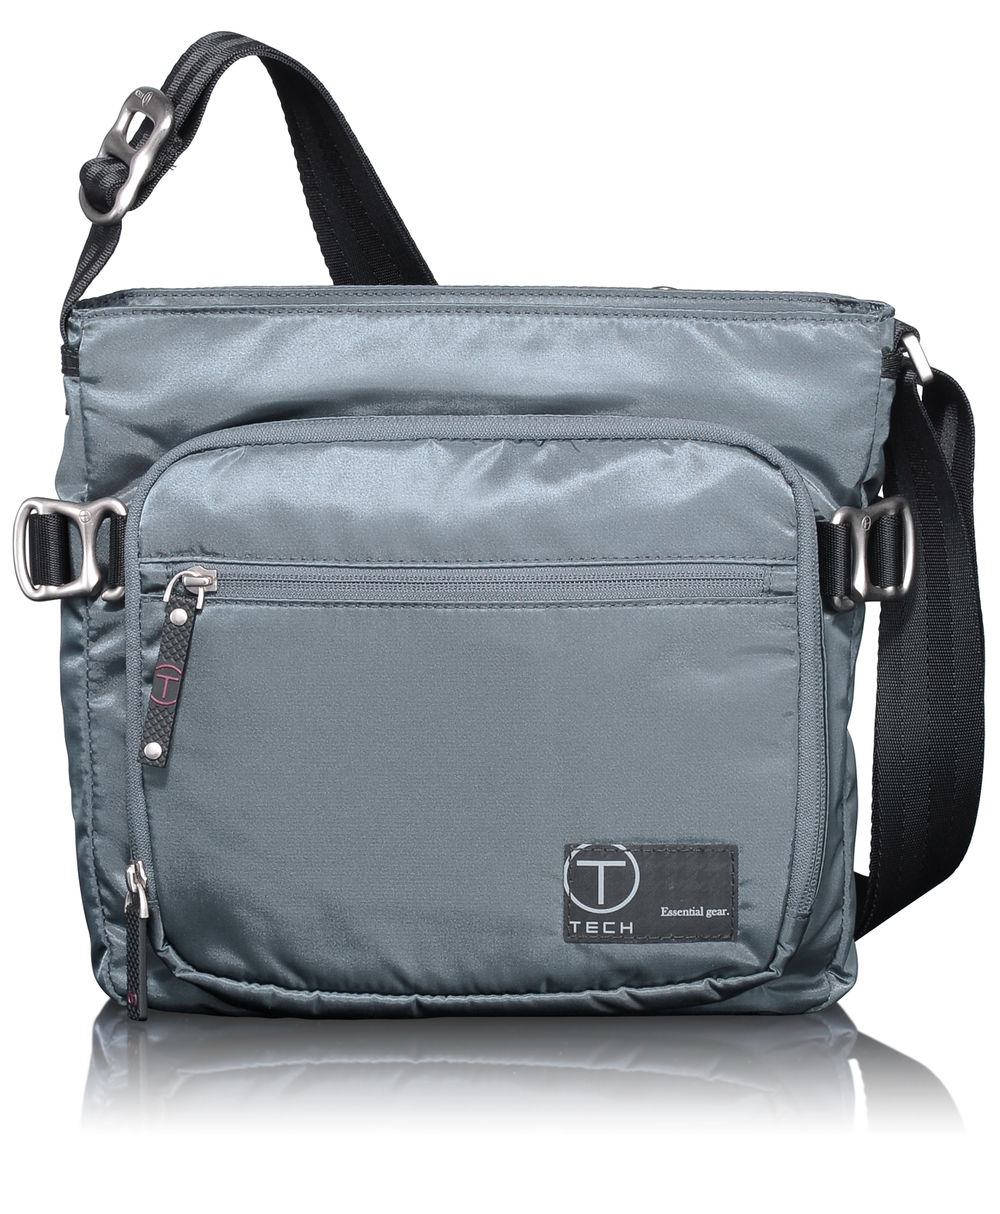 57502 Cadet T-Tech Icon King Top Zip Crossbody .jpg